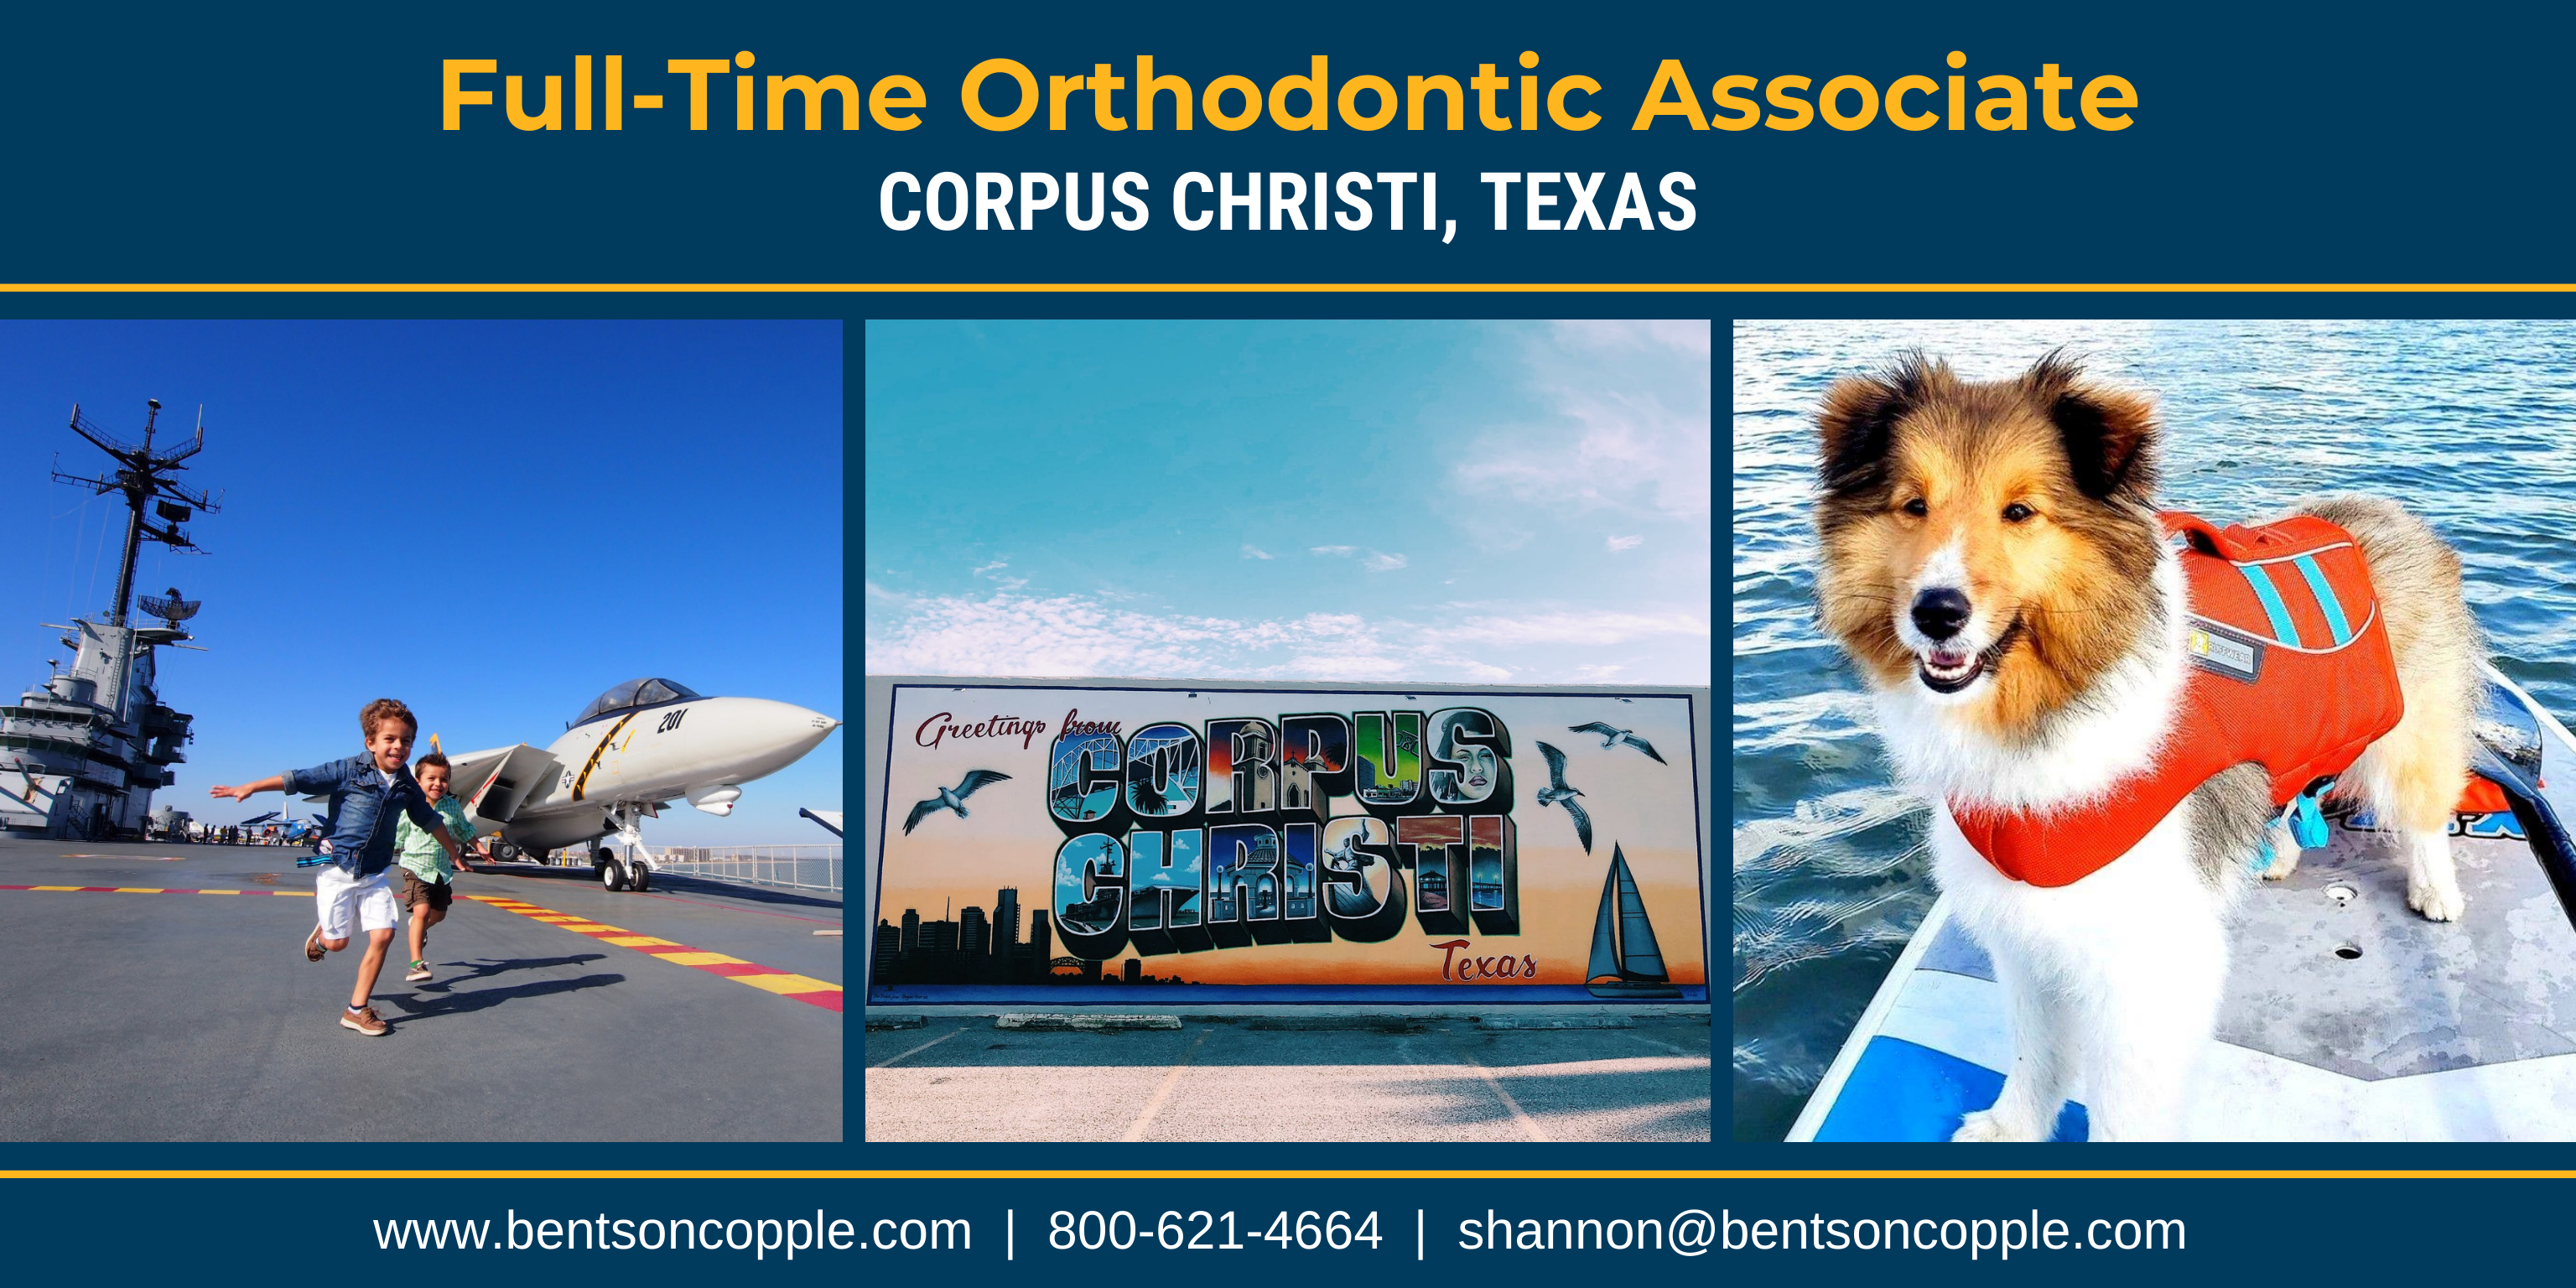 Corpus Christi, Texas - Full-Time Orthodontic Associate